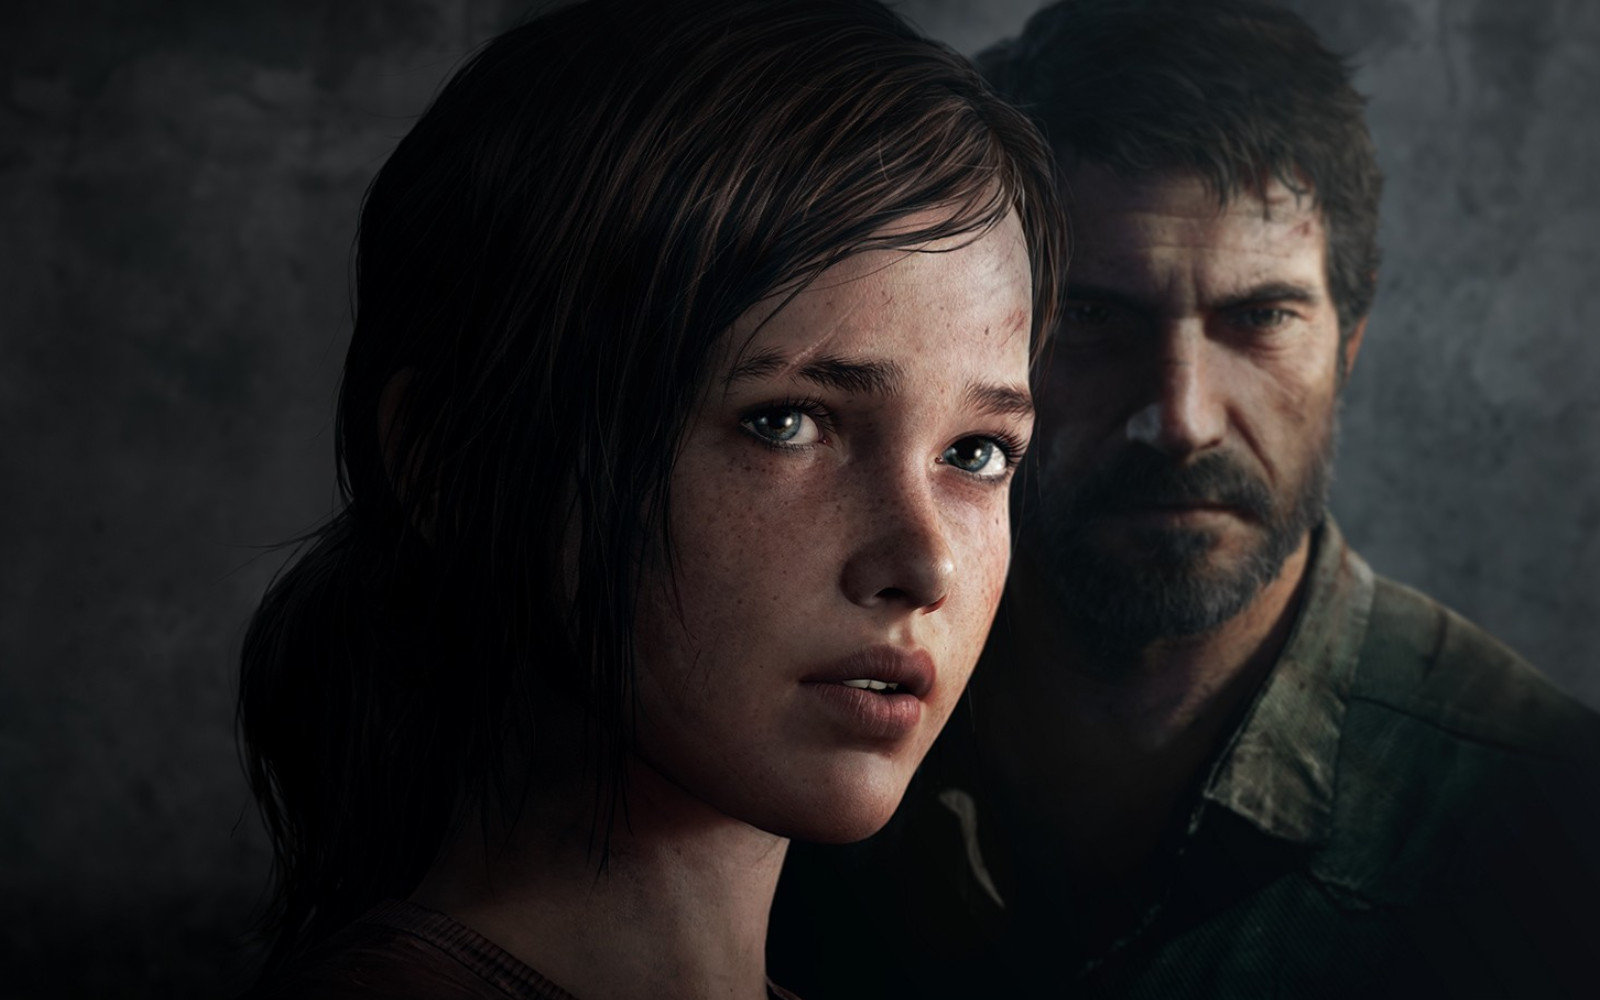 The Last of Us la serie en HBO promete no decepcionar por esta razón